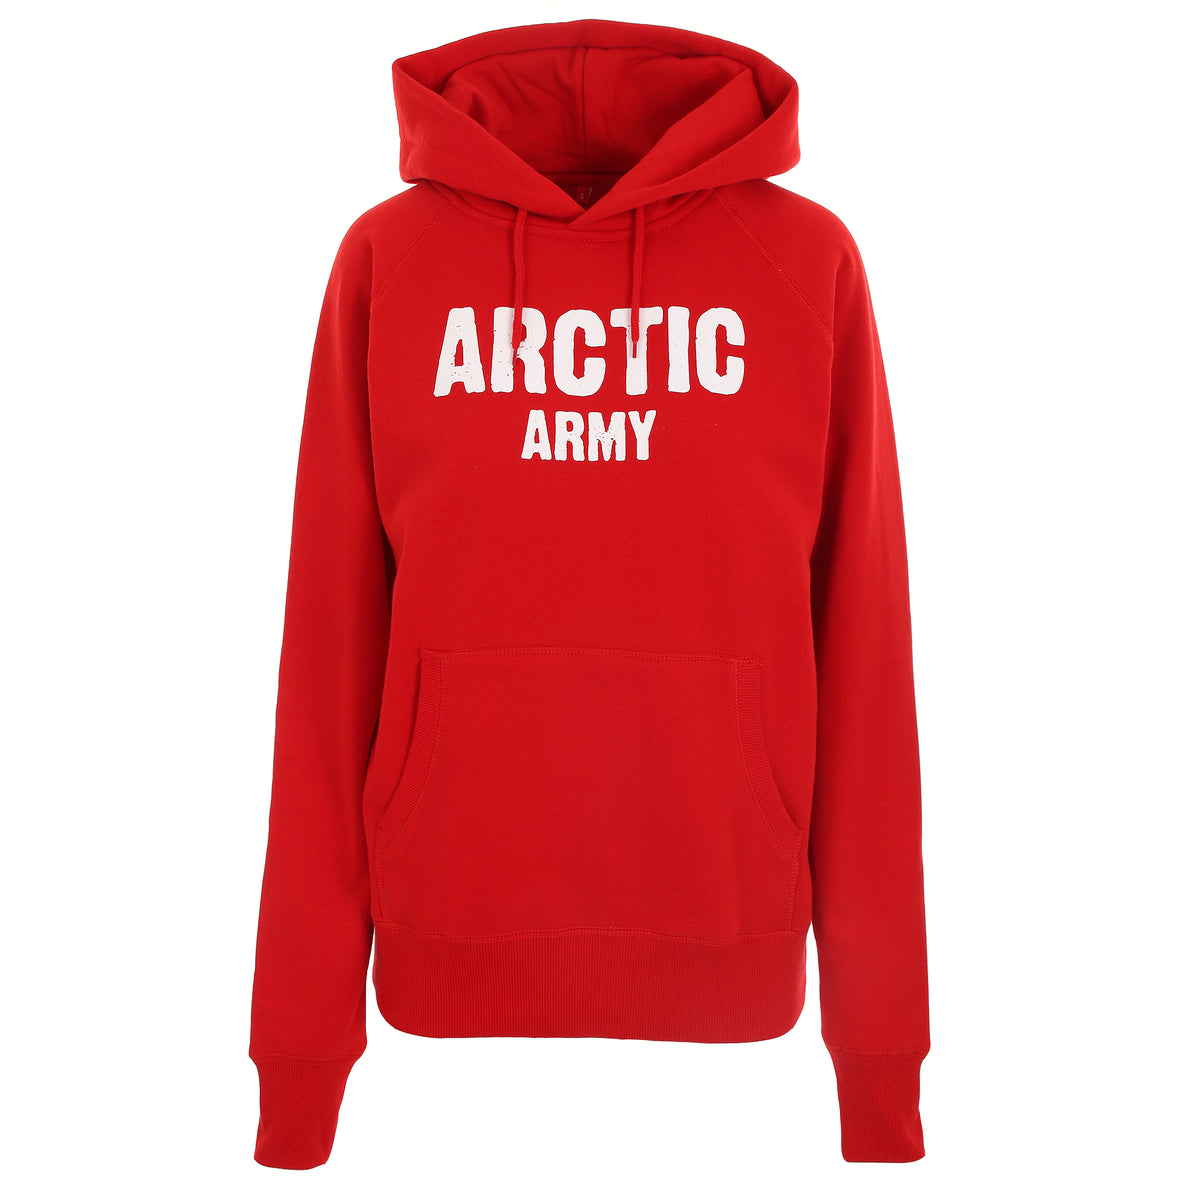 ARCTIC HOODIE - RED / WHITE